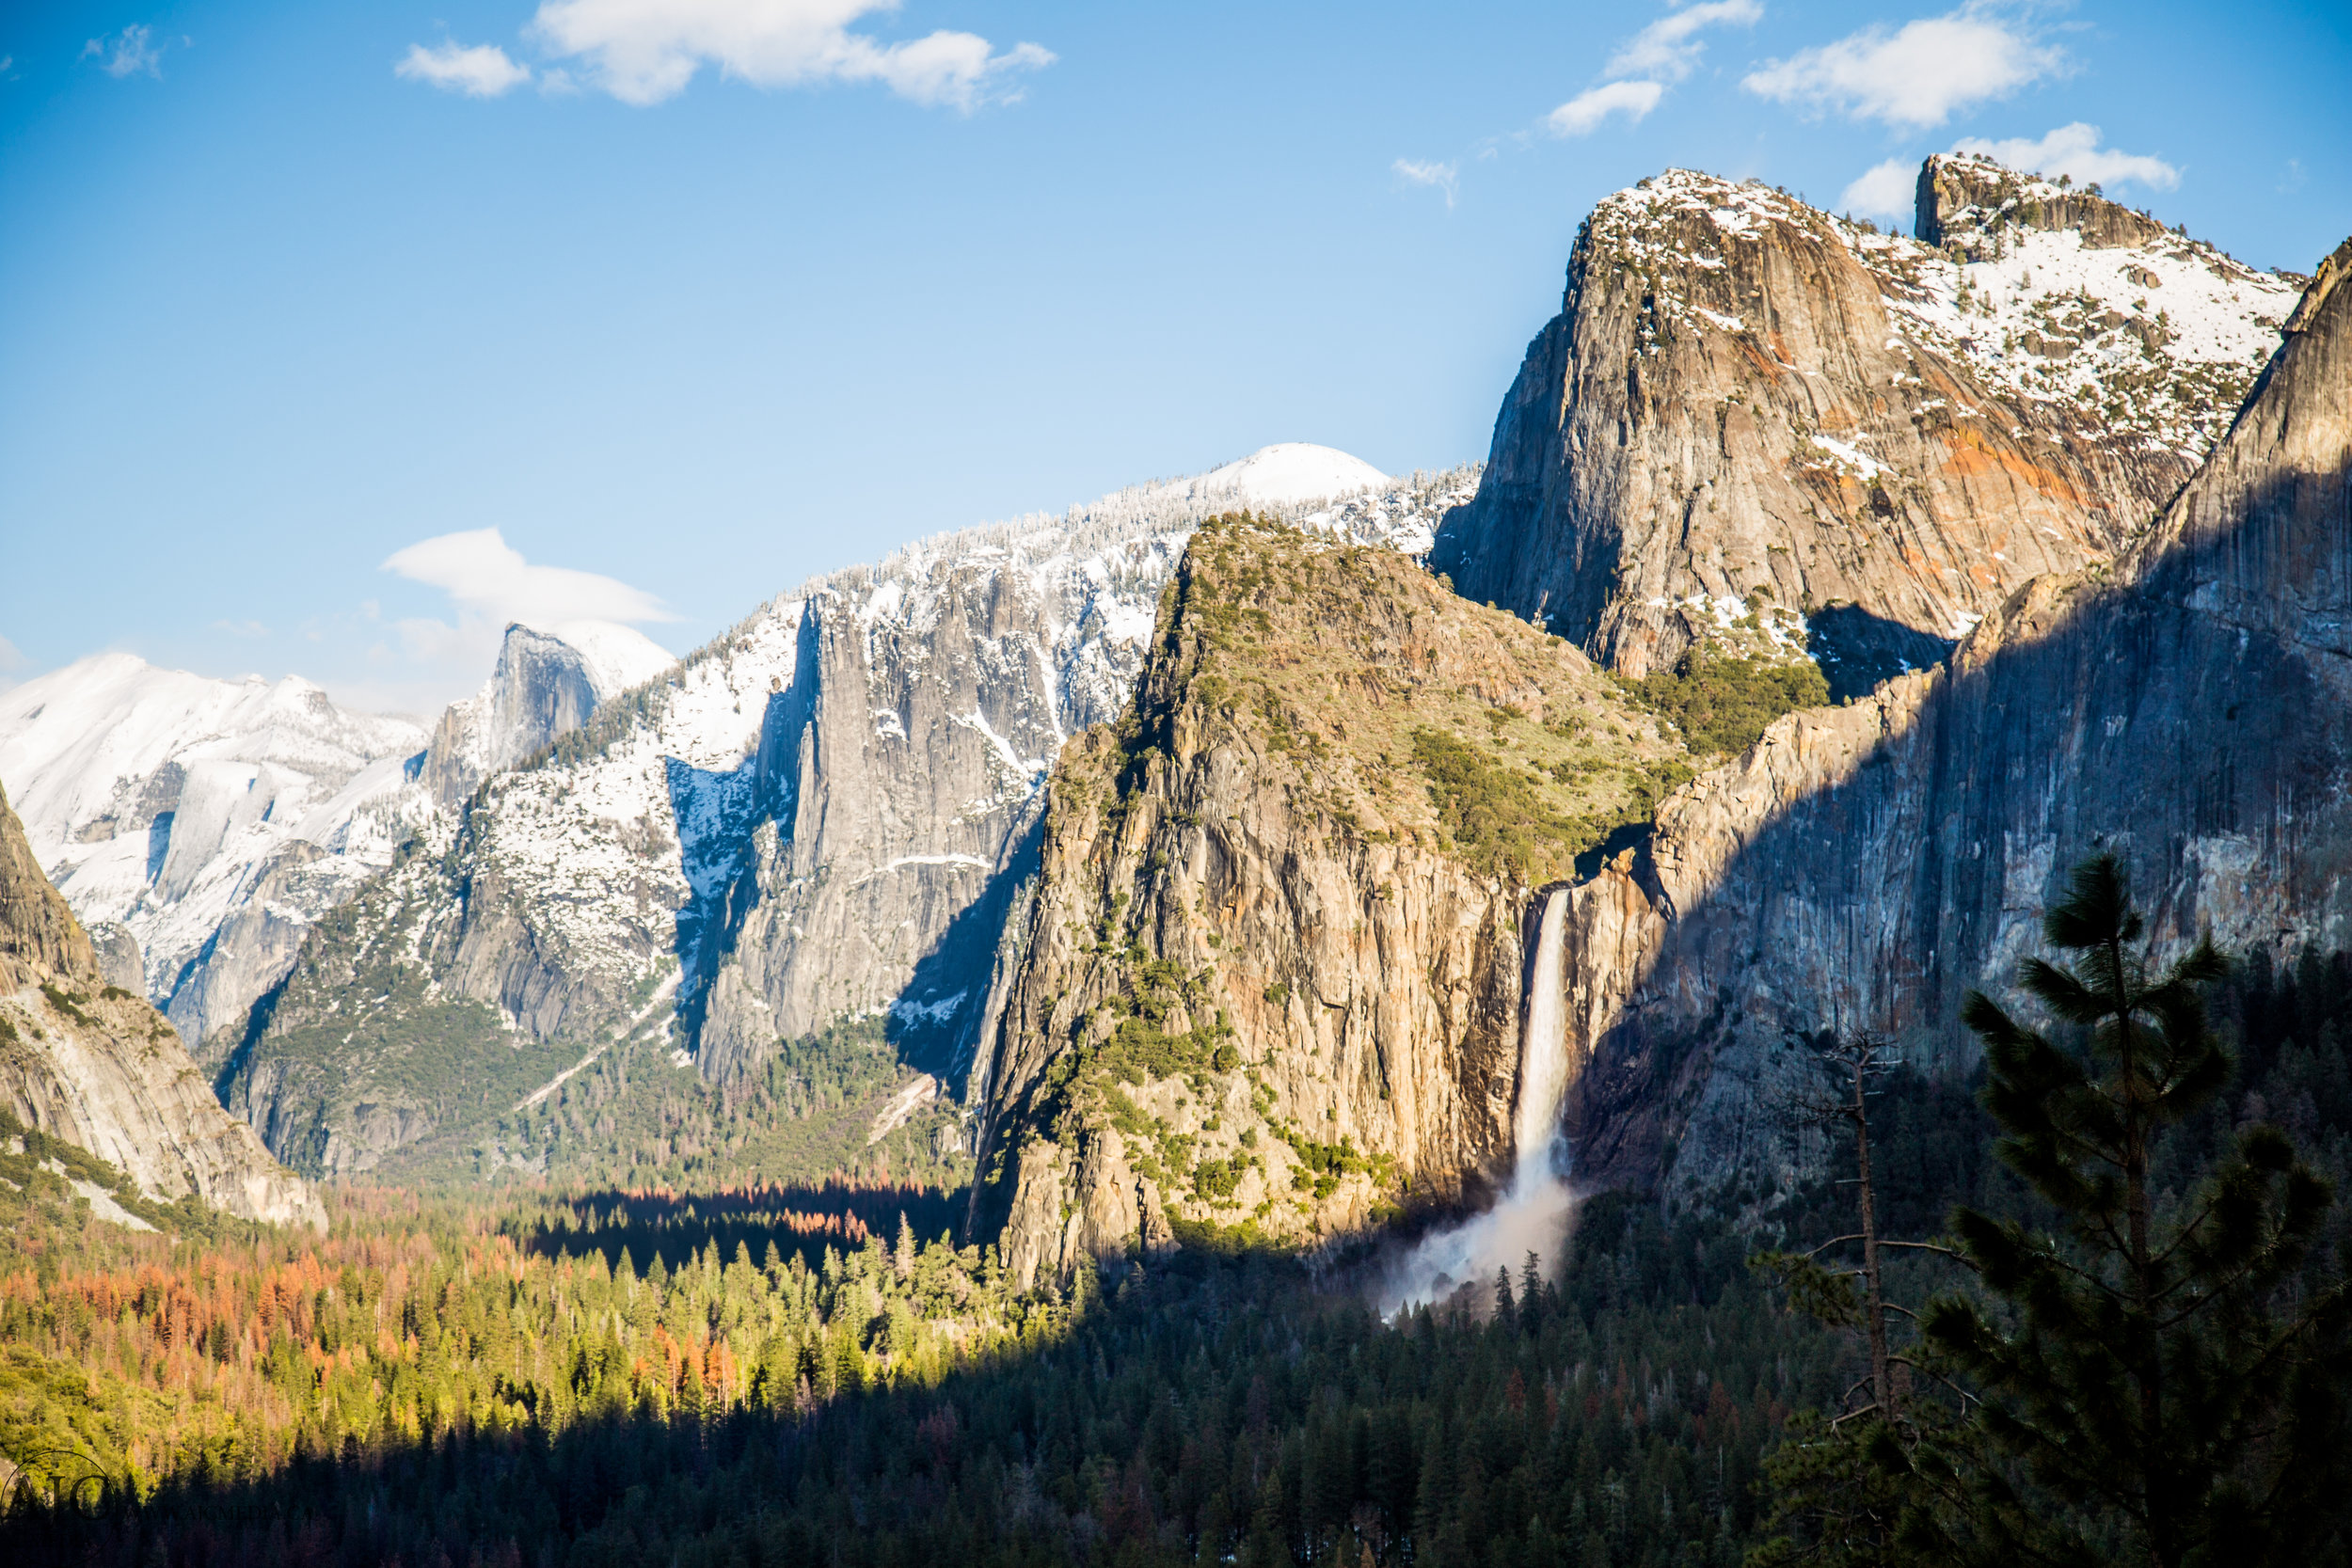 The quintessential shot from Tunnel View, Yosemite Valley.